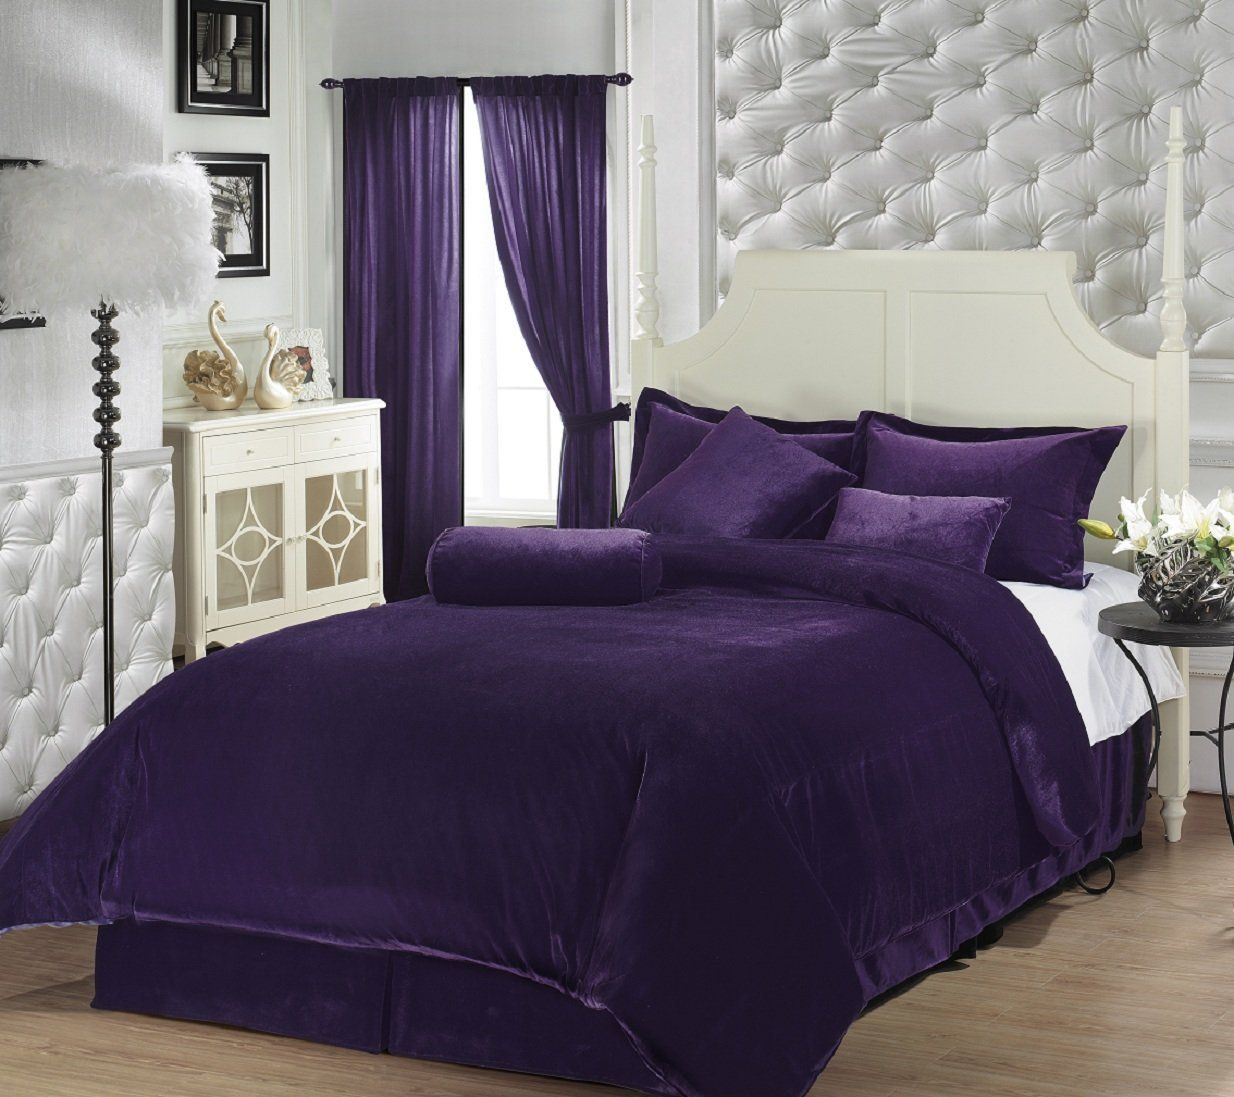 Black and purple bed sheets - Purple Bedroom Best Purple Bedroom Ideas Purple Bedroomspurple Beddingpurple